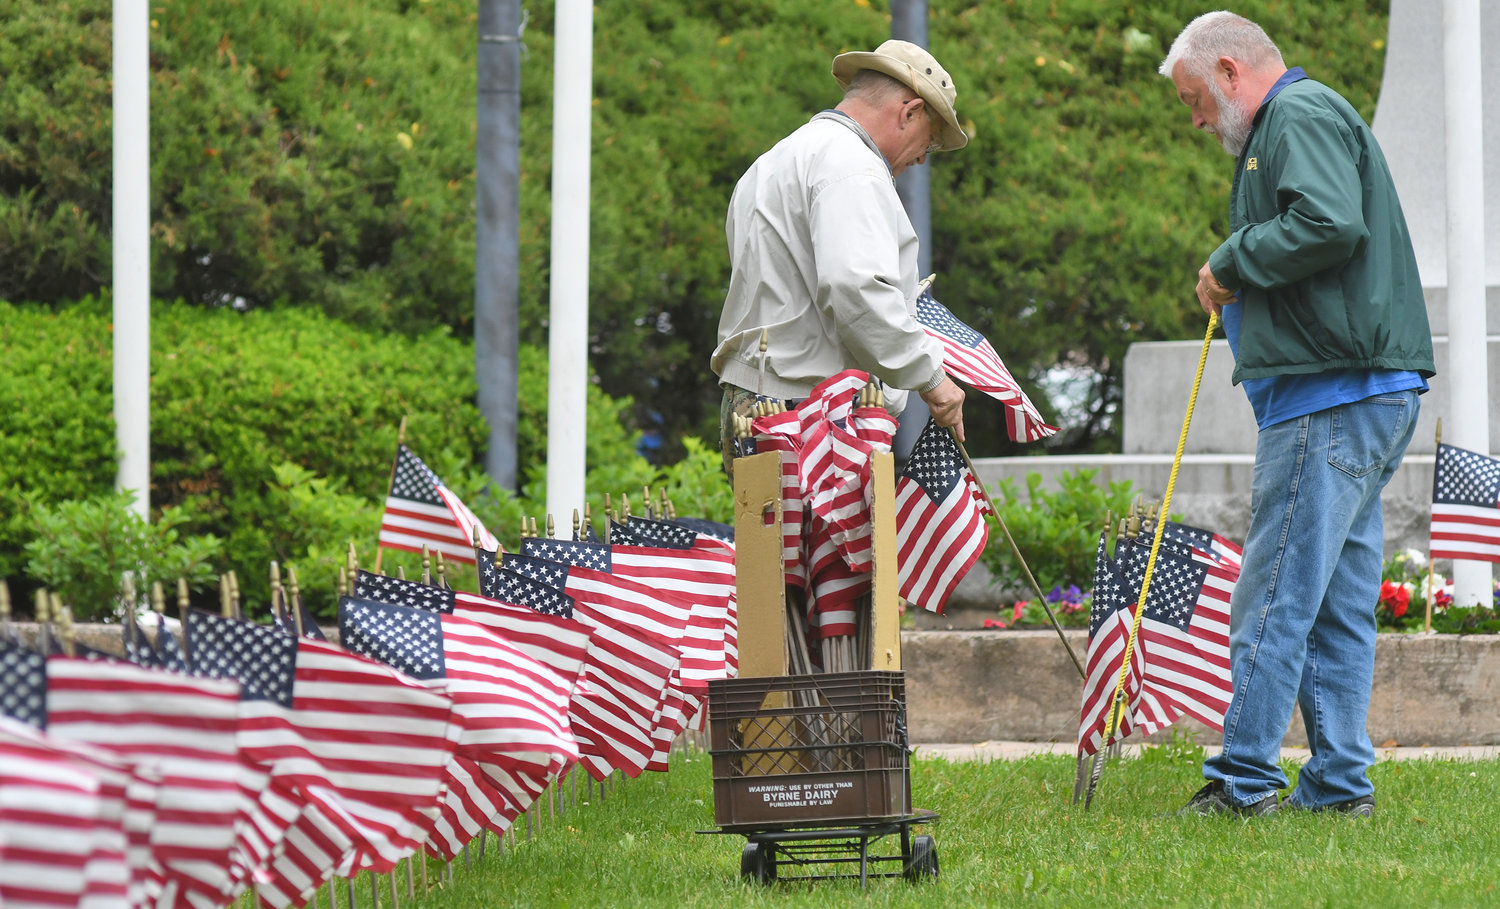 IT'S A GRAND OLD FLAG...ALL 3,500 OF THEM — Duane Niemi, left, and Ron Witt place some of the 3,500 flags that will adorn the twin parks — Veterans Memorial Park and Gansevoort Park — on the 200-block of North James Street for Flag Day on Thursday. Longtime Rome Veterans Committee member Tom Kenealy said that over the past seven years, the group, led by a dedicated core group of volunteers, has put out about 20,000 flags to honor America. Additional photo, page 2.